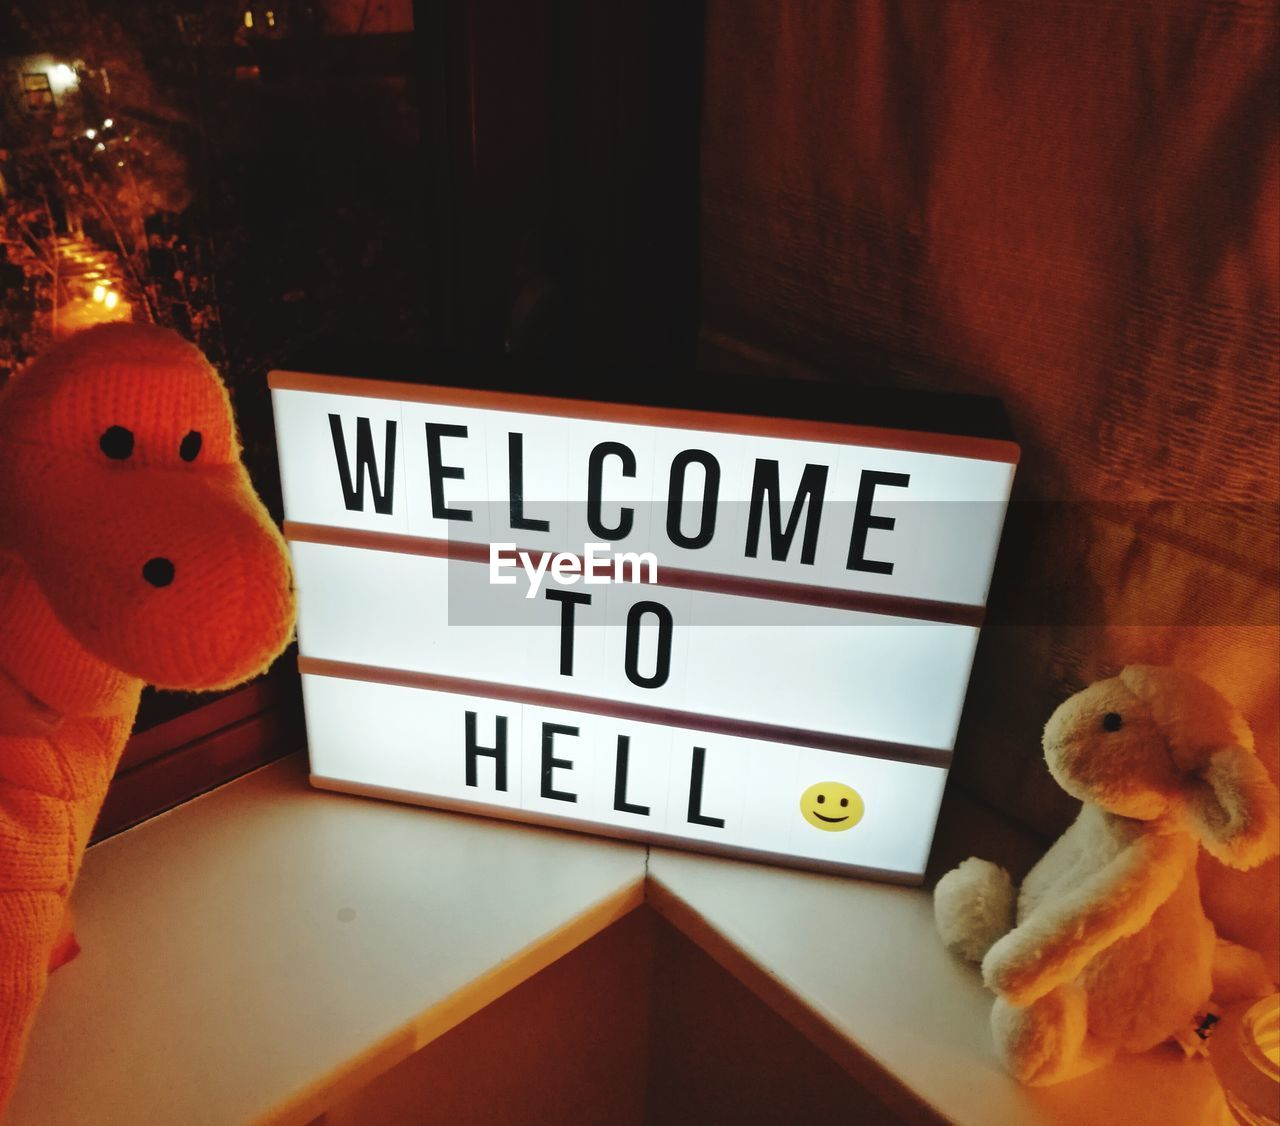 indoors, text, toy, representation, no people, communication, western script, stuffed toy, close-up, still life, capital letter, human representation, home interior, art and craft, table, number, orange color, message